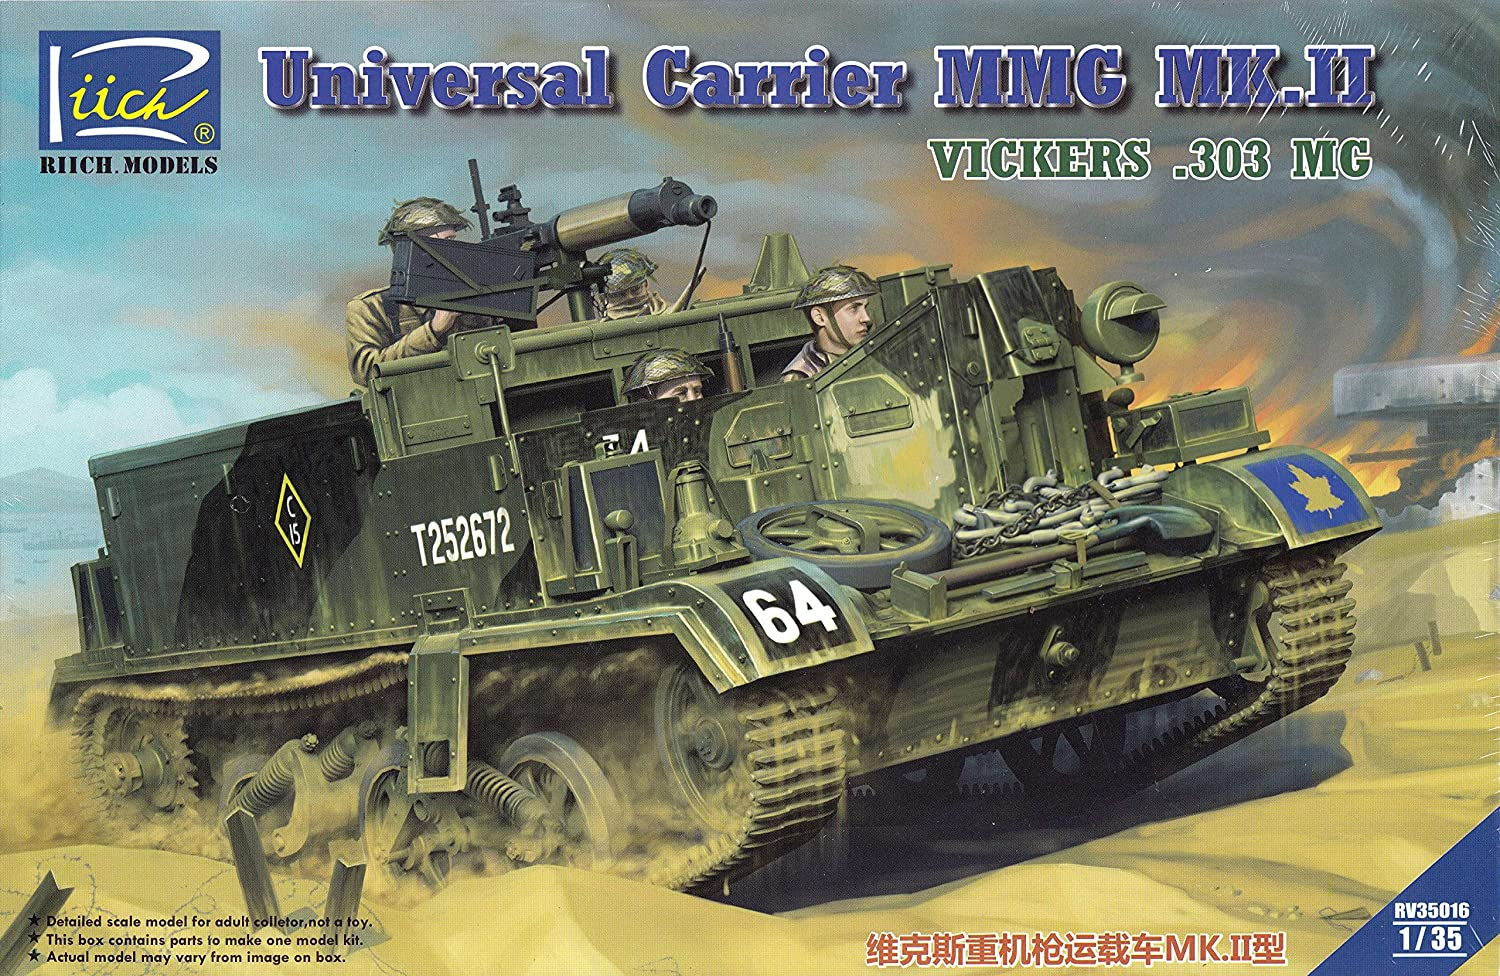 Riich 1/35 Universal Carrier MMG Mk.II (.303 Vickers MMG Carrier)